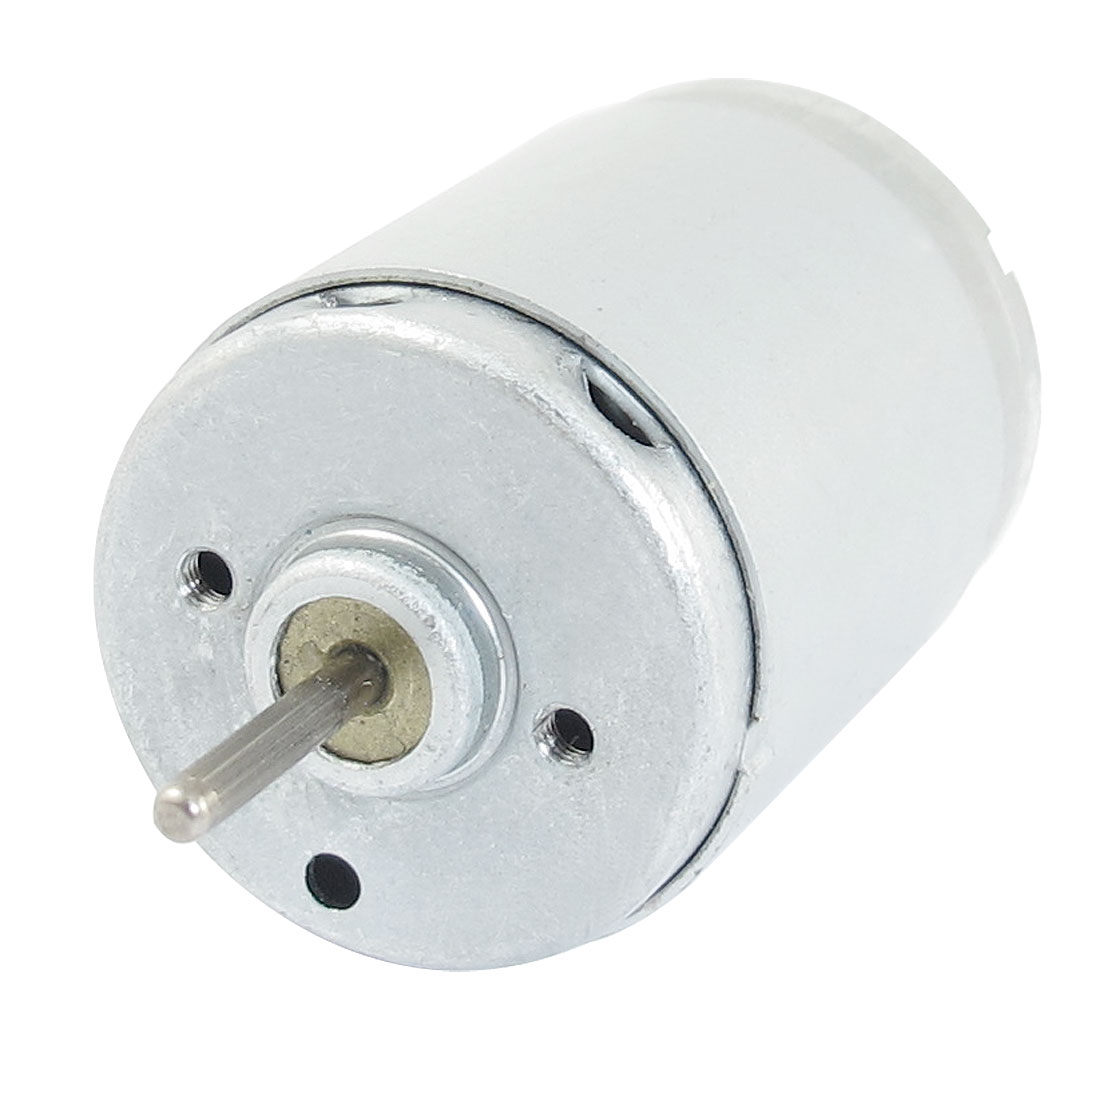 DC 10.8V 0.05A 4100RPM 2mm Dia Shaft 2P Mini Motor Replacement Parts